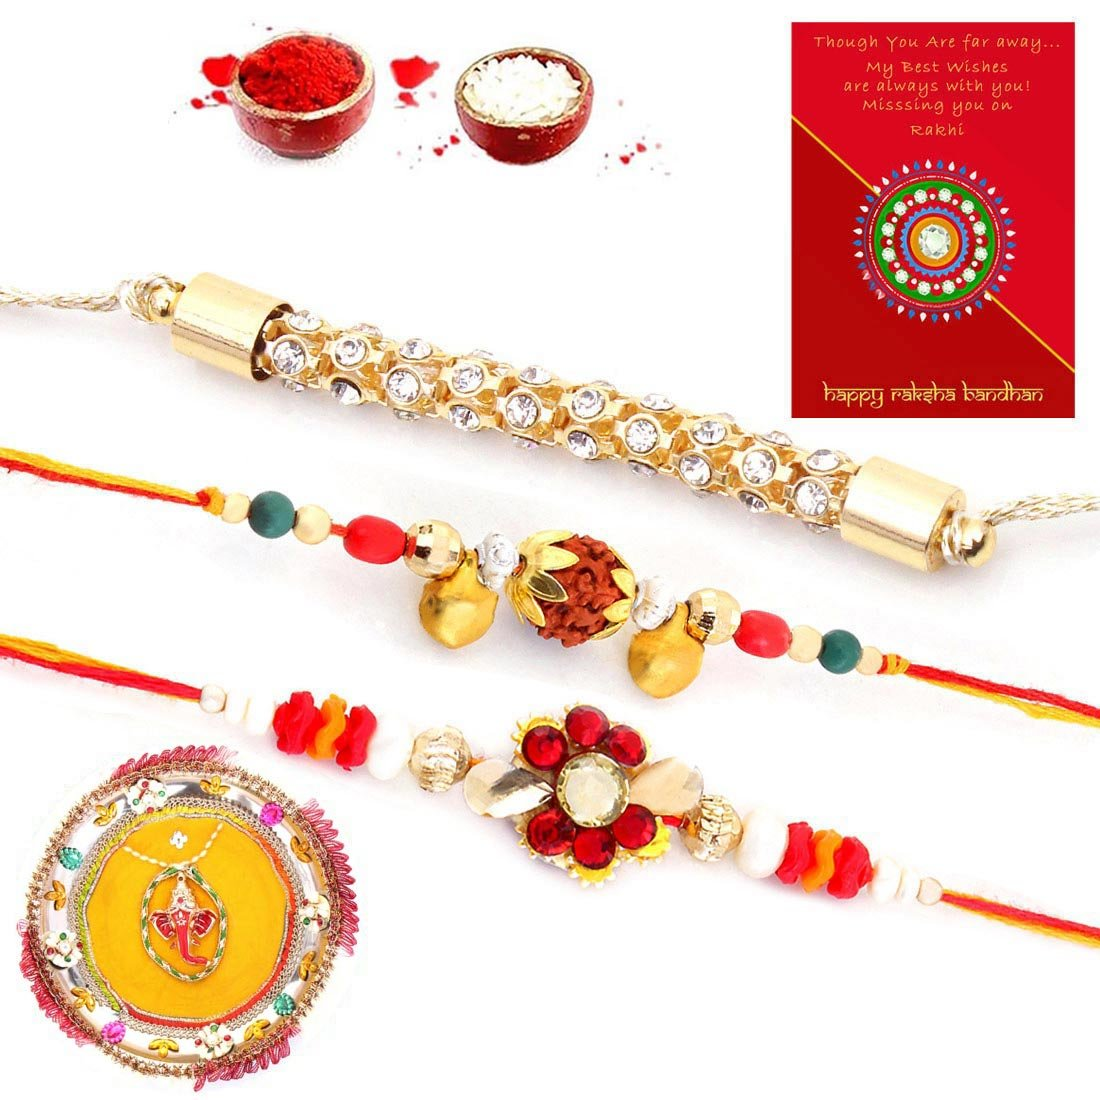 KumKum and Rice for Tilak 3 Assorted Rakhis Rakhi Raksha Bandhan Thread Bracelet Set for Brother with Puja Rakhi Thali